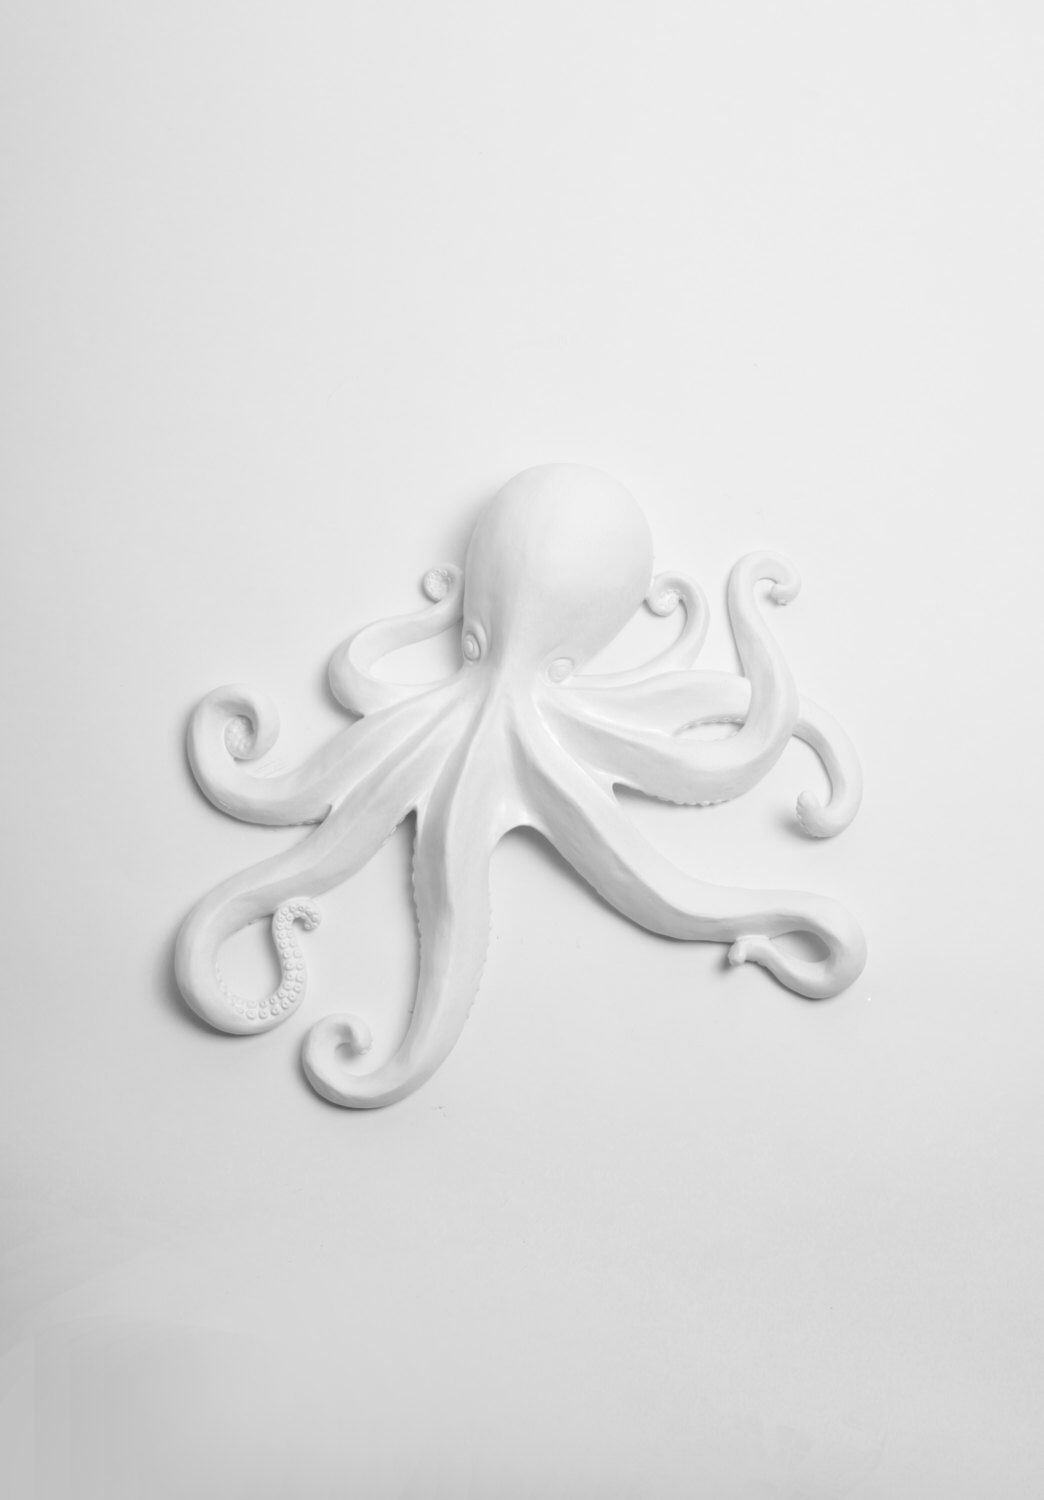 the kraken octopus sculpture in white large white faux octopus